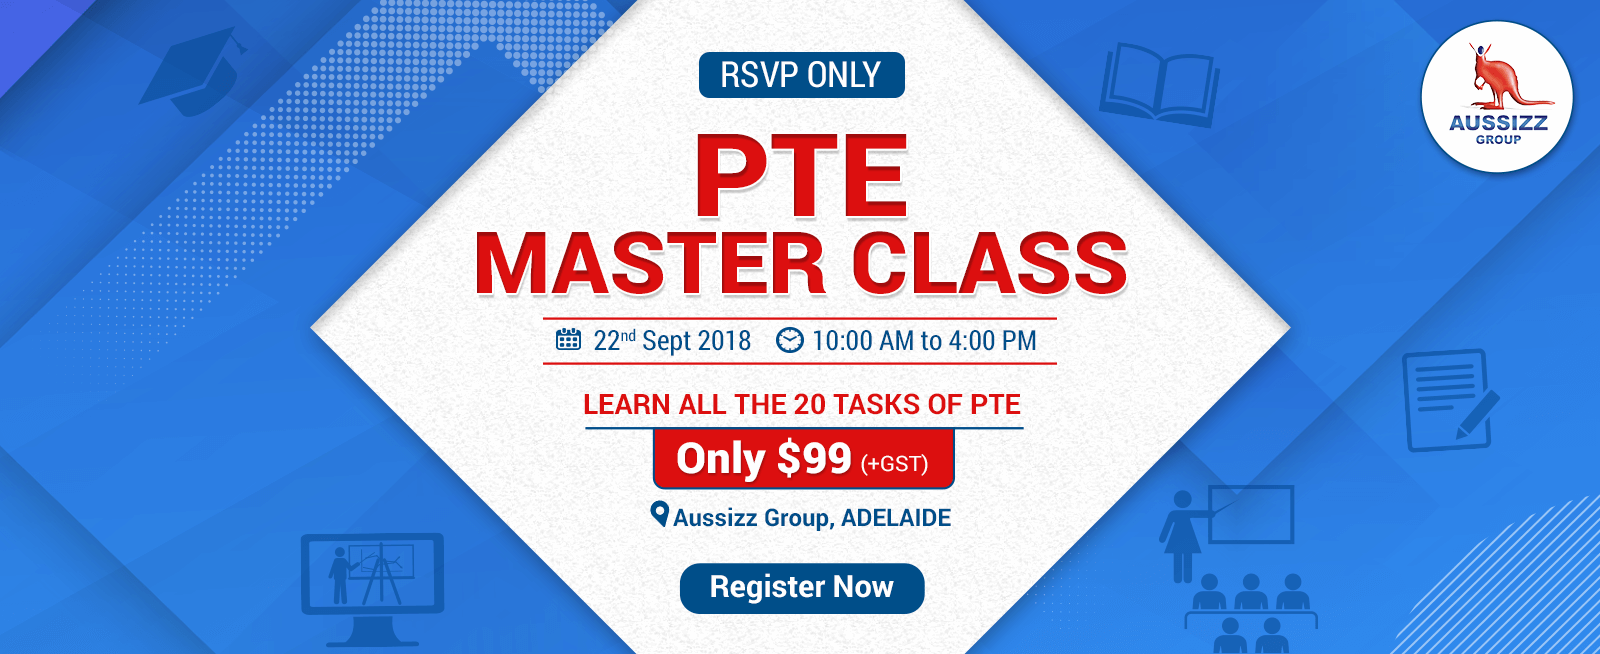 PTE Master Class